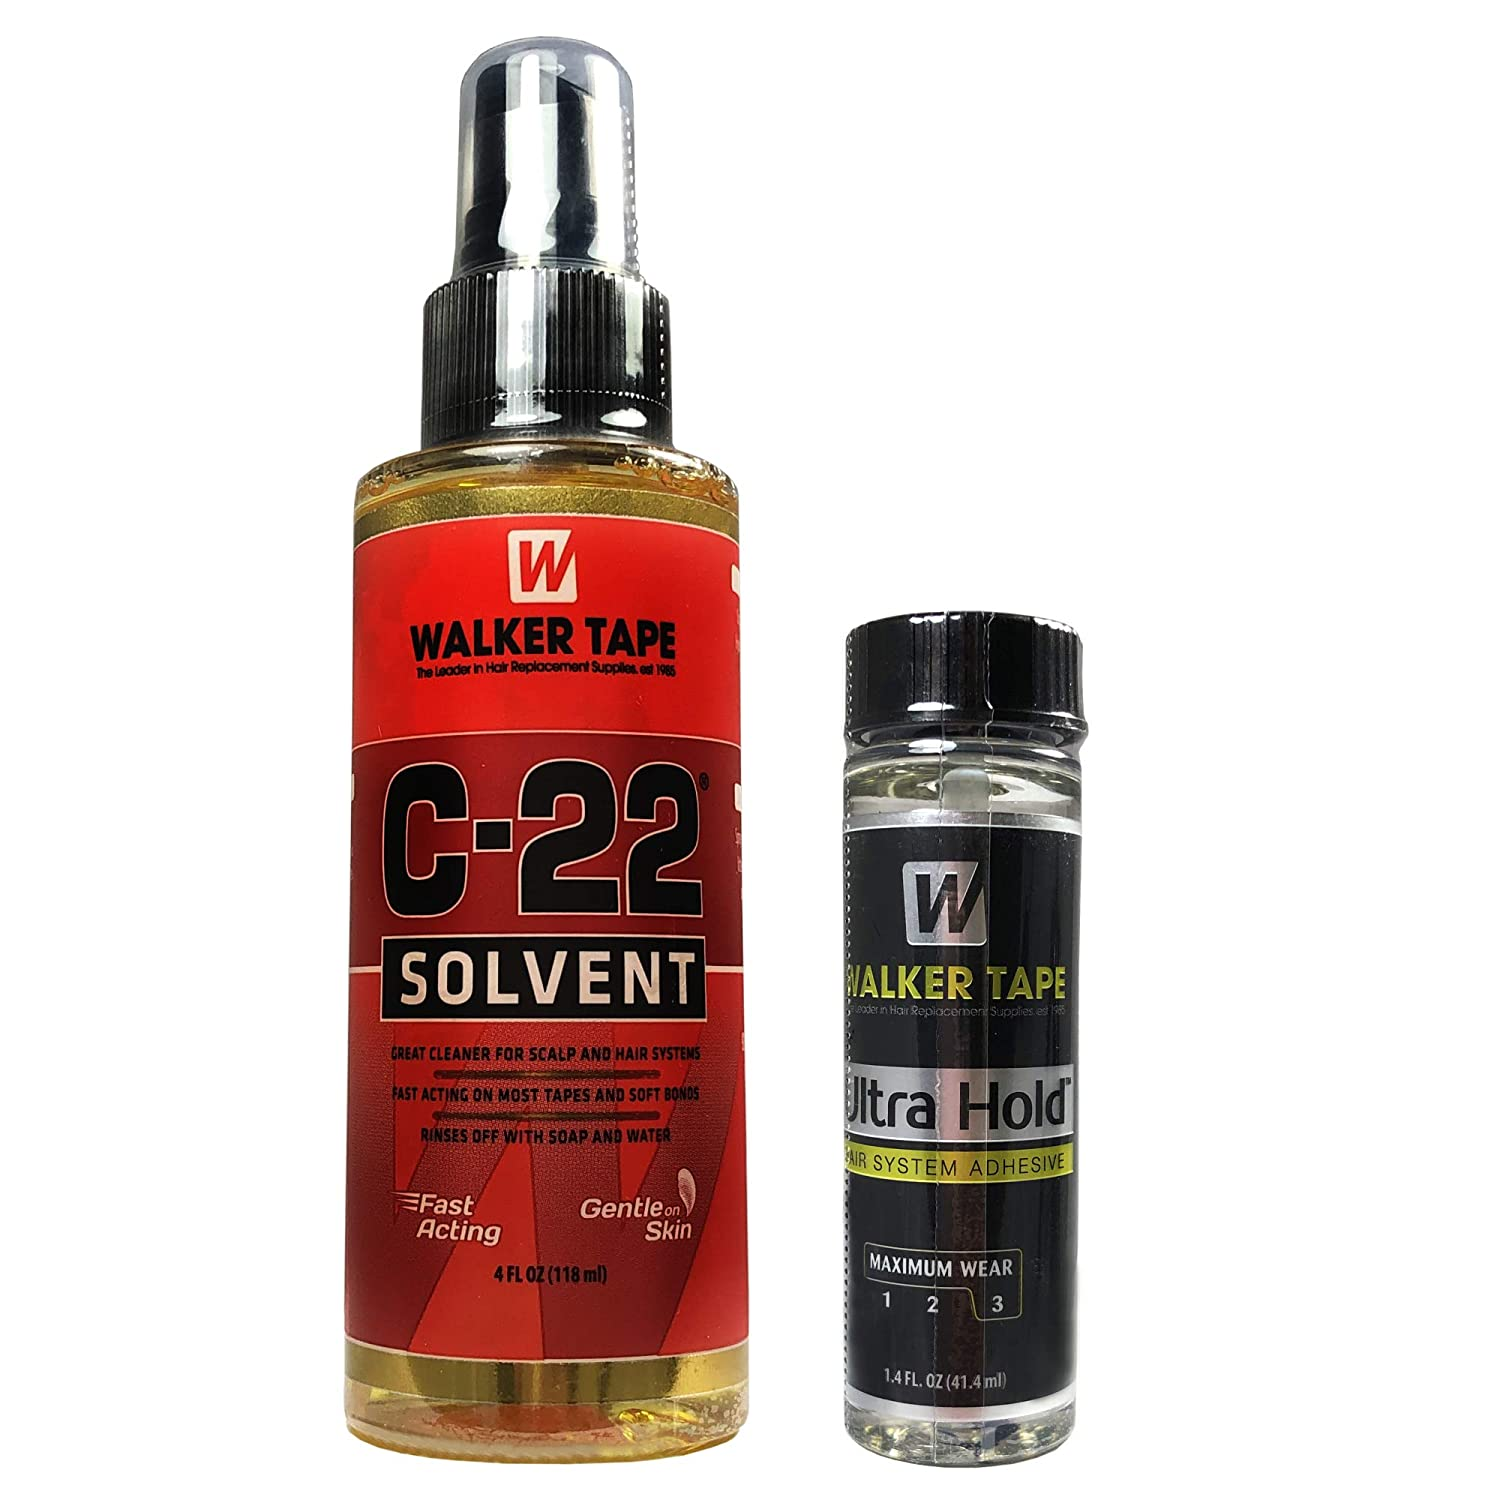 Saver Pack | 4 Ounce C22 Citrus Solvent with 1.4 Ounce Ultra Hold Hair System Adhesive | The Best of Walker Tape | Safe on skin | Long Lasting Hold with Fast Action Adhesive Remover